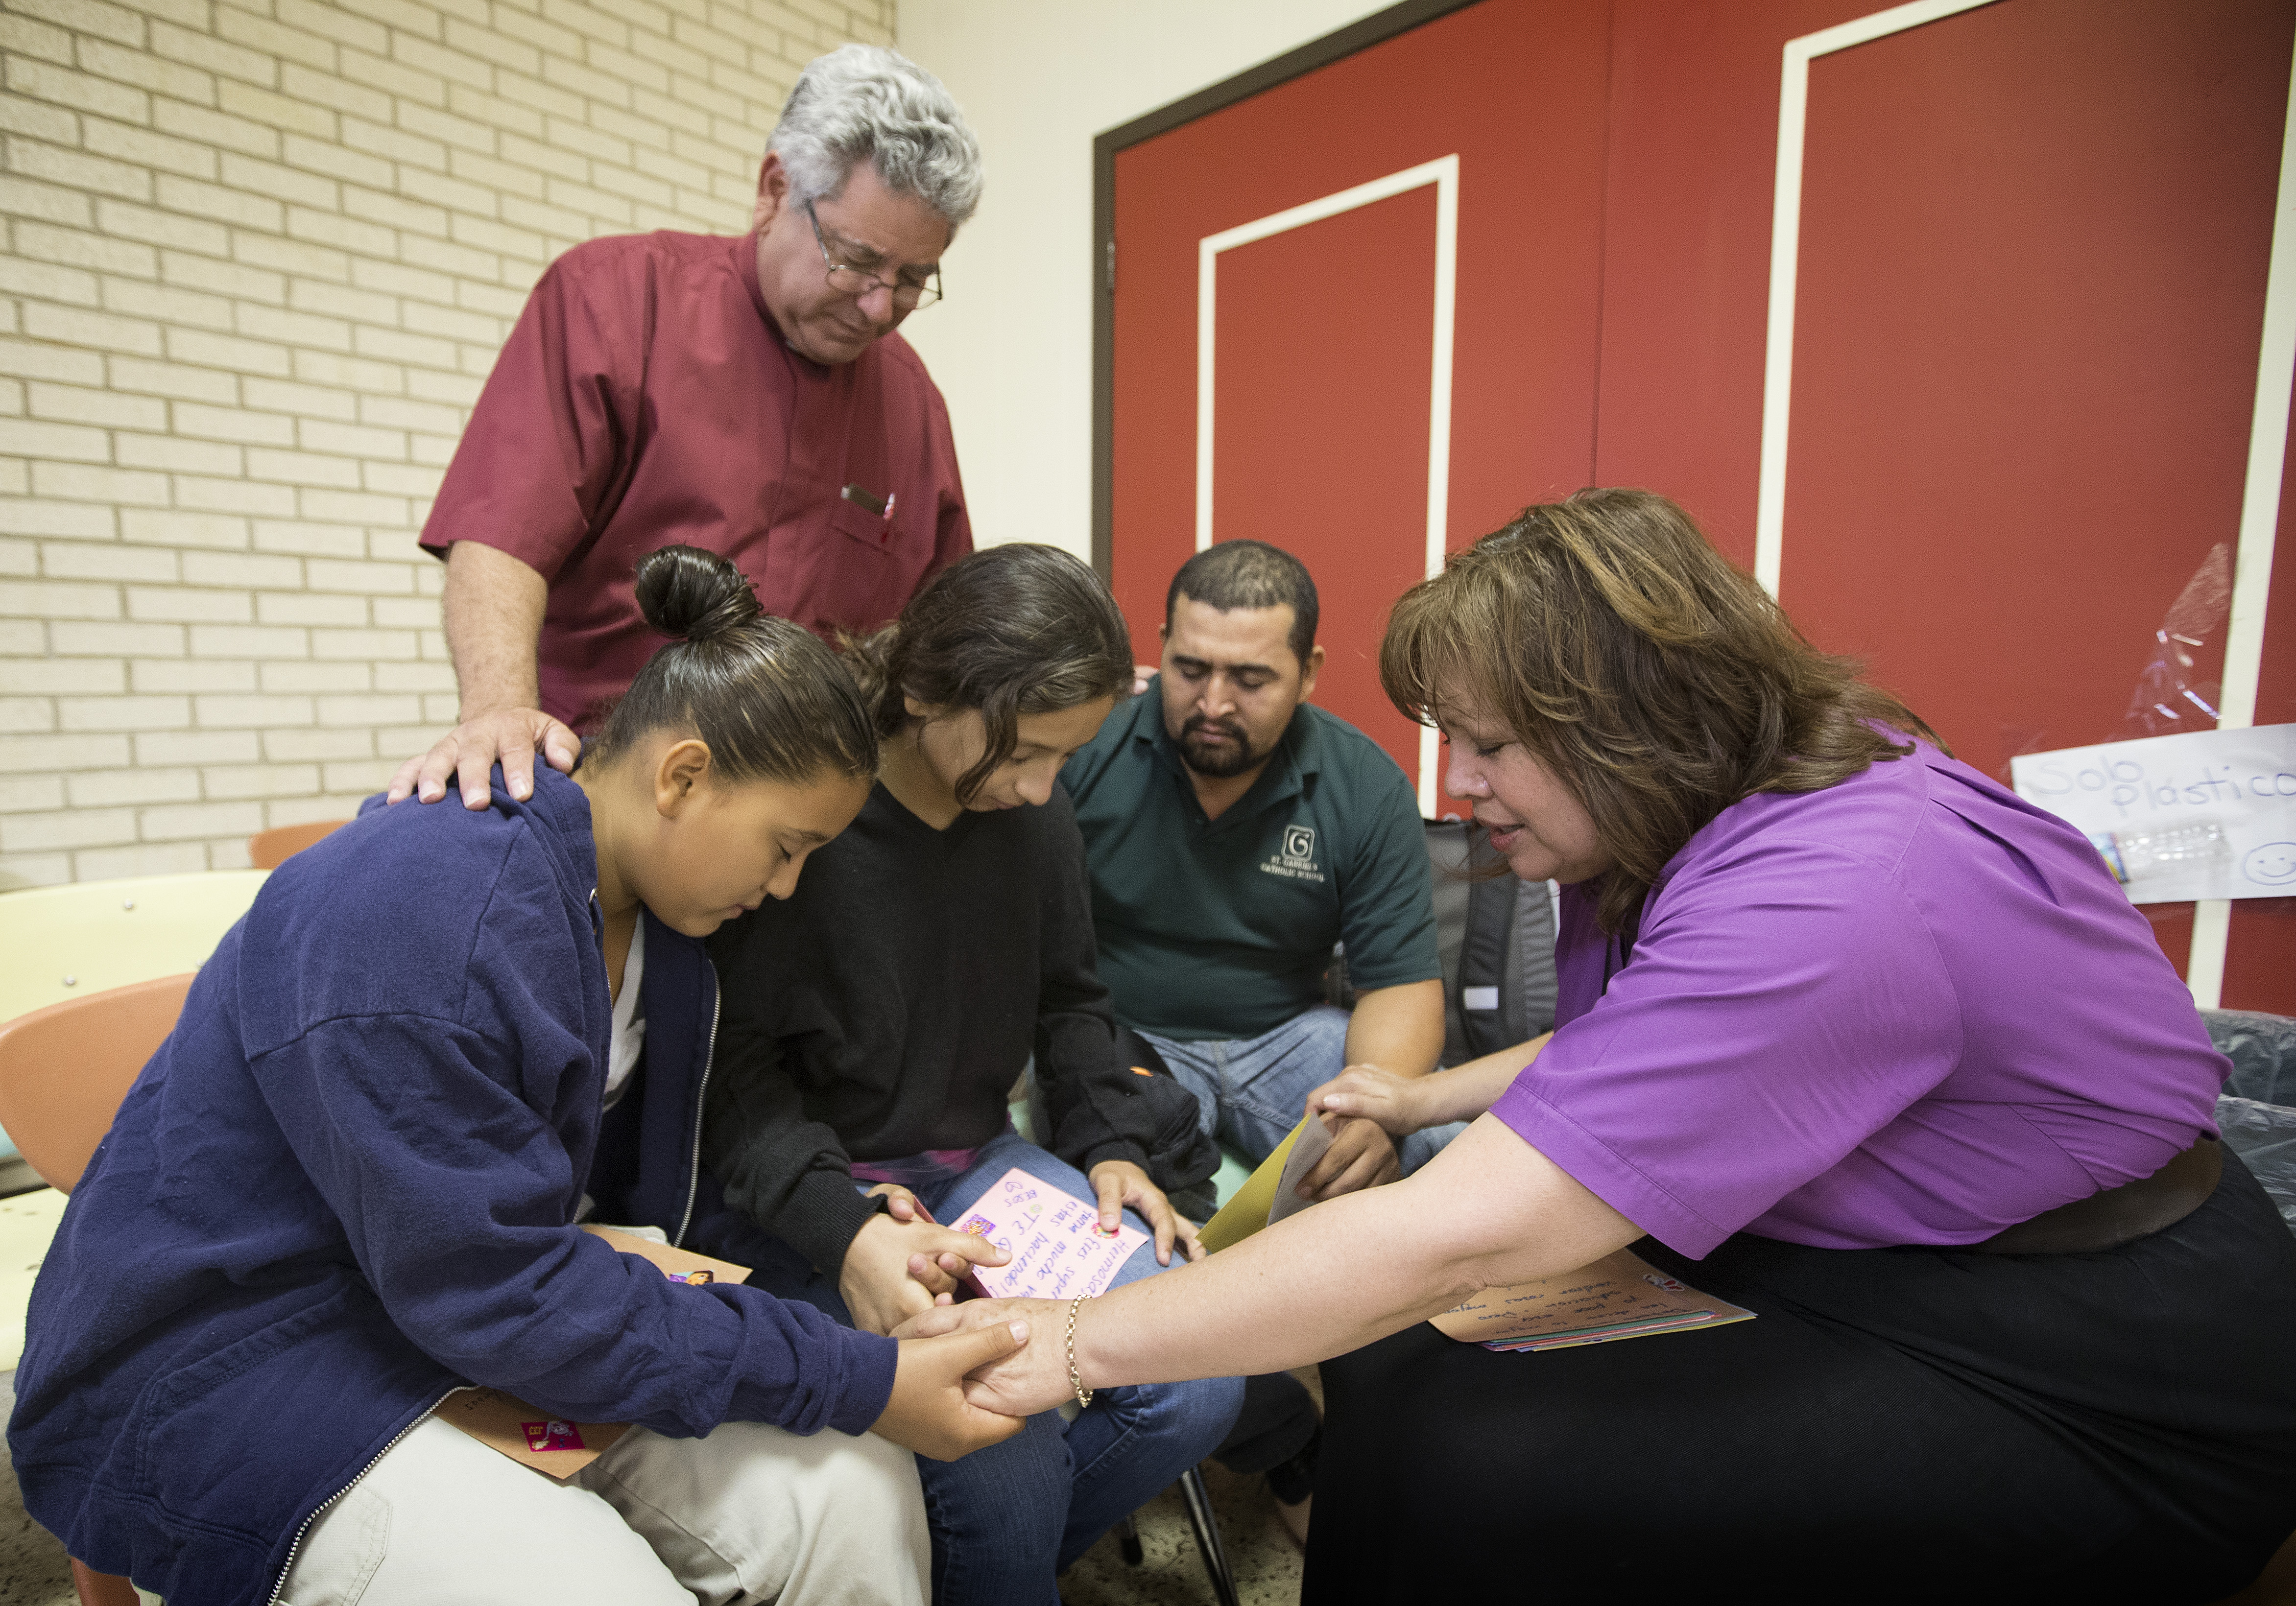 United Methodist Bishop Minerva Carcaño (right) and the Rev. Javier Leyva (standing) pray with Elmer Moreno Gonsales and his daughters Mariela (left) and Katerin at the immigrant welcome center at Sacred Heart Catholic Church in McAllen, Texas. The family immigrated from Honduras following a month-long journey. File photo by Mike DuBose, UMNS